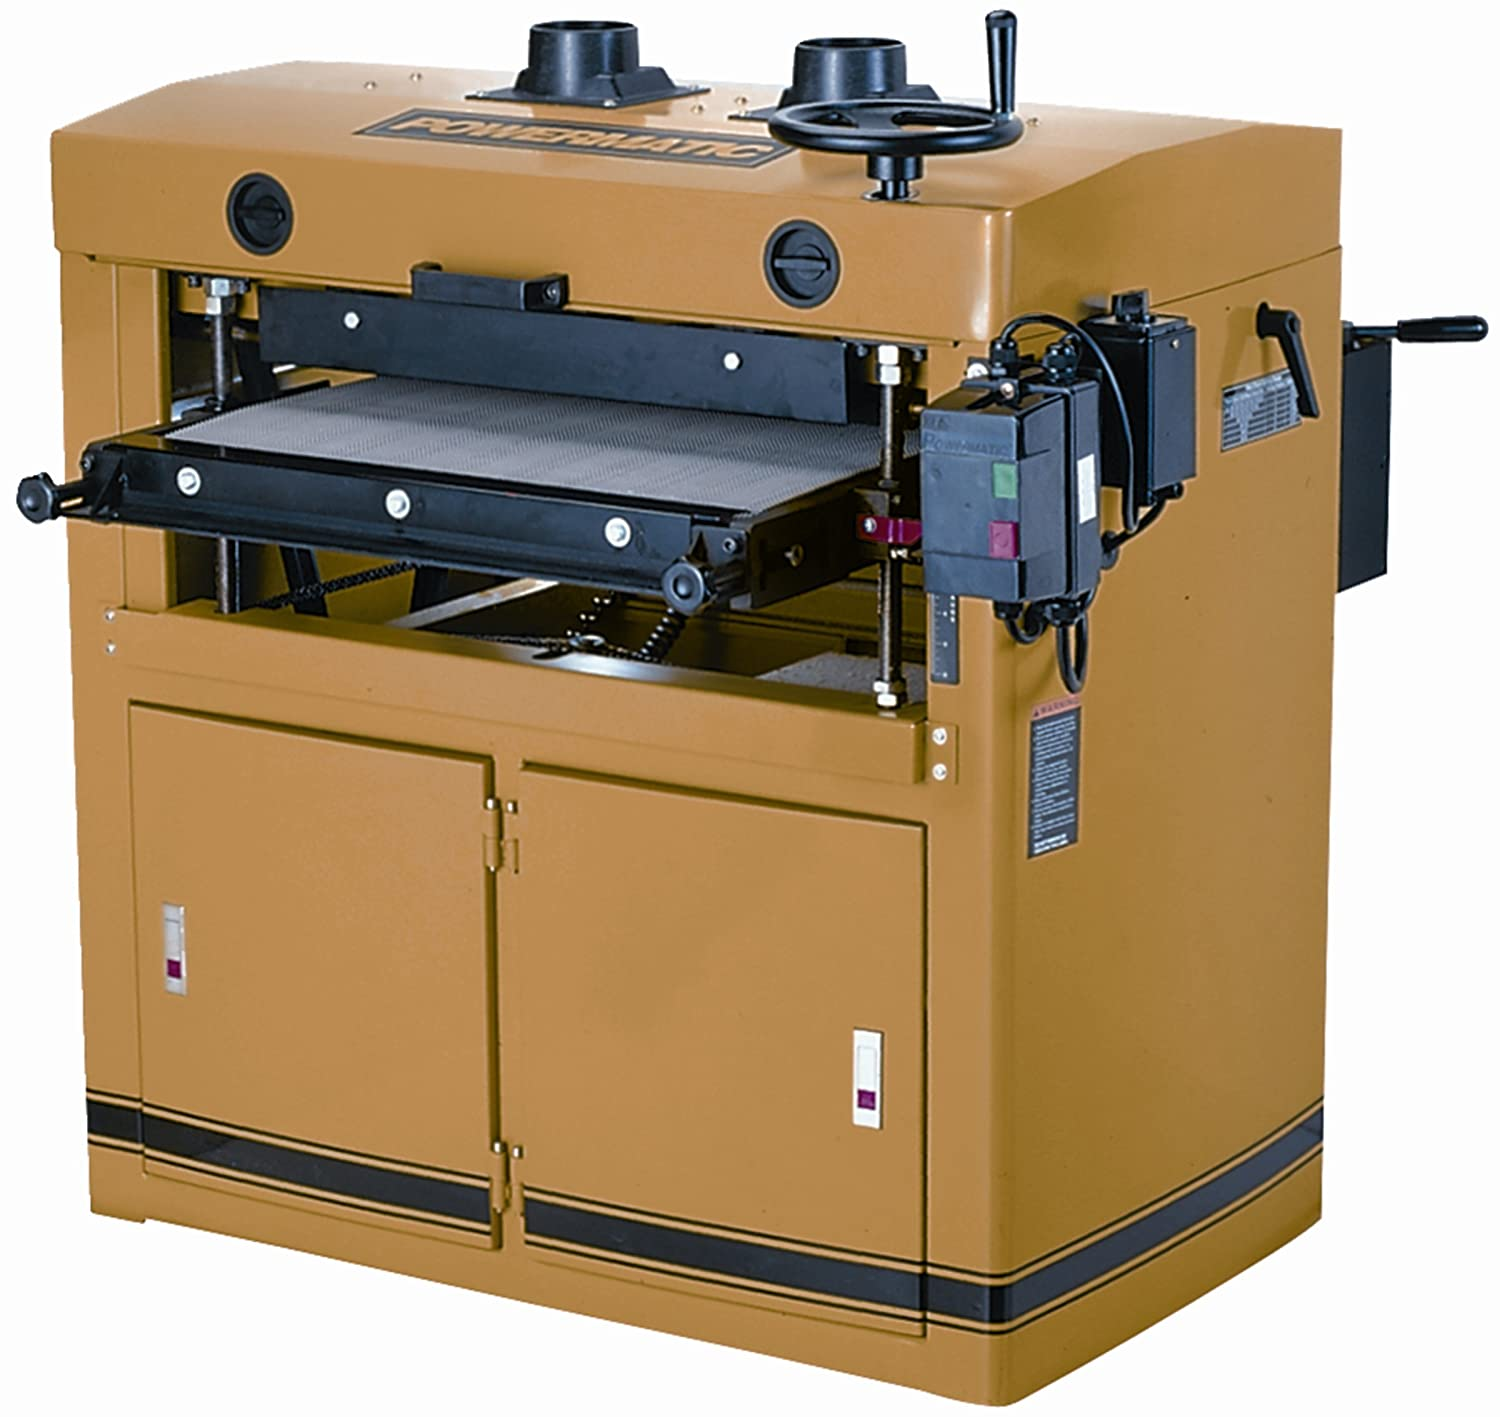 Powermatic 1791290 Model DDS-225 25-Inch Drum Sander